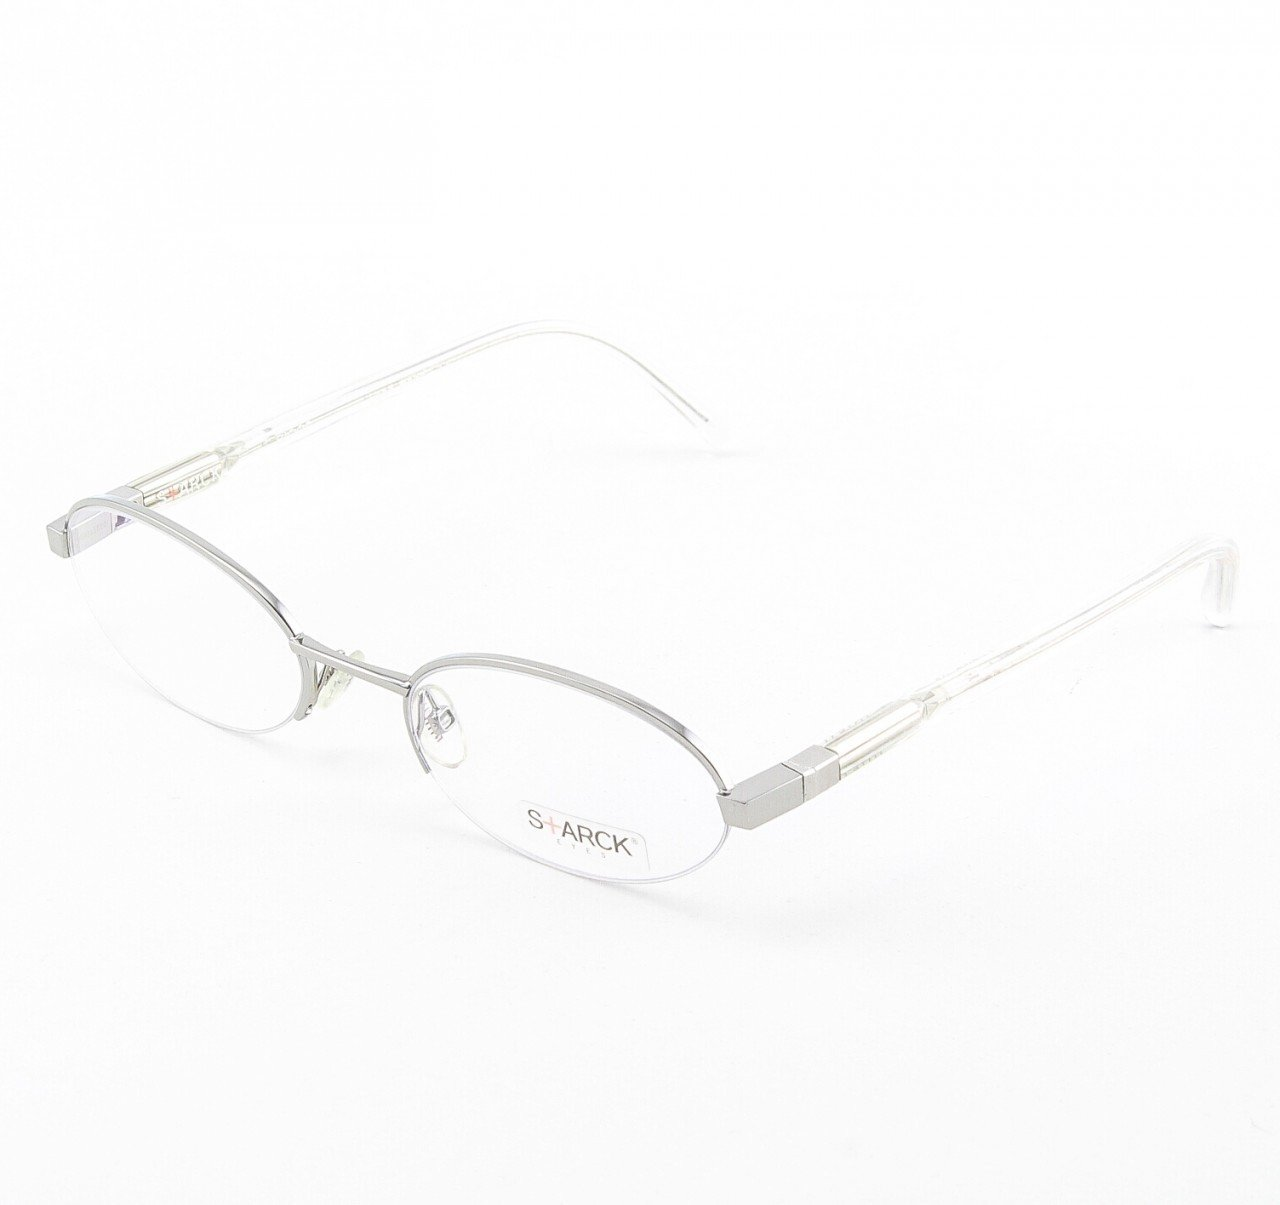 Starck Eyeglasses P0648 Col. 09 Crystal with Clear Lenses